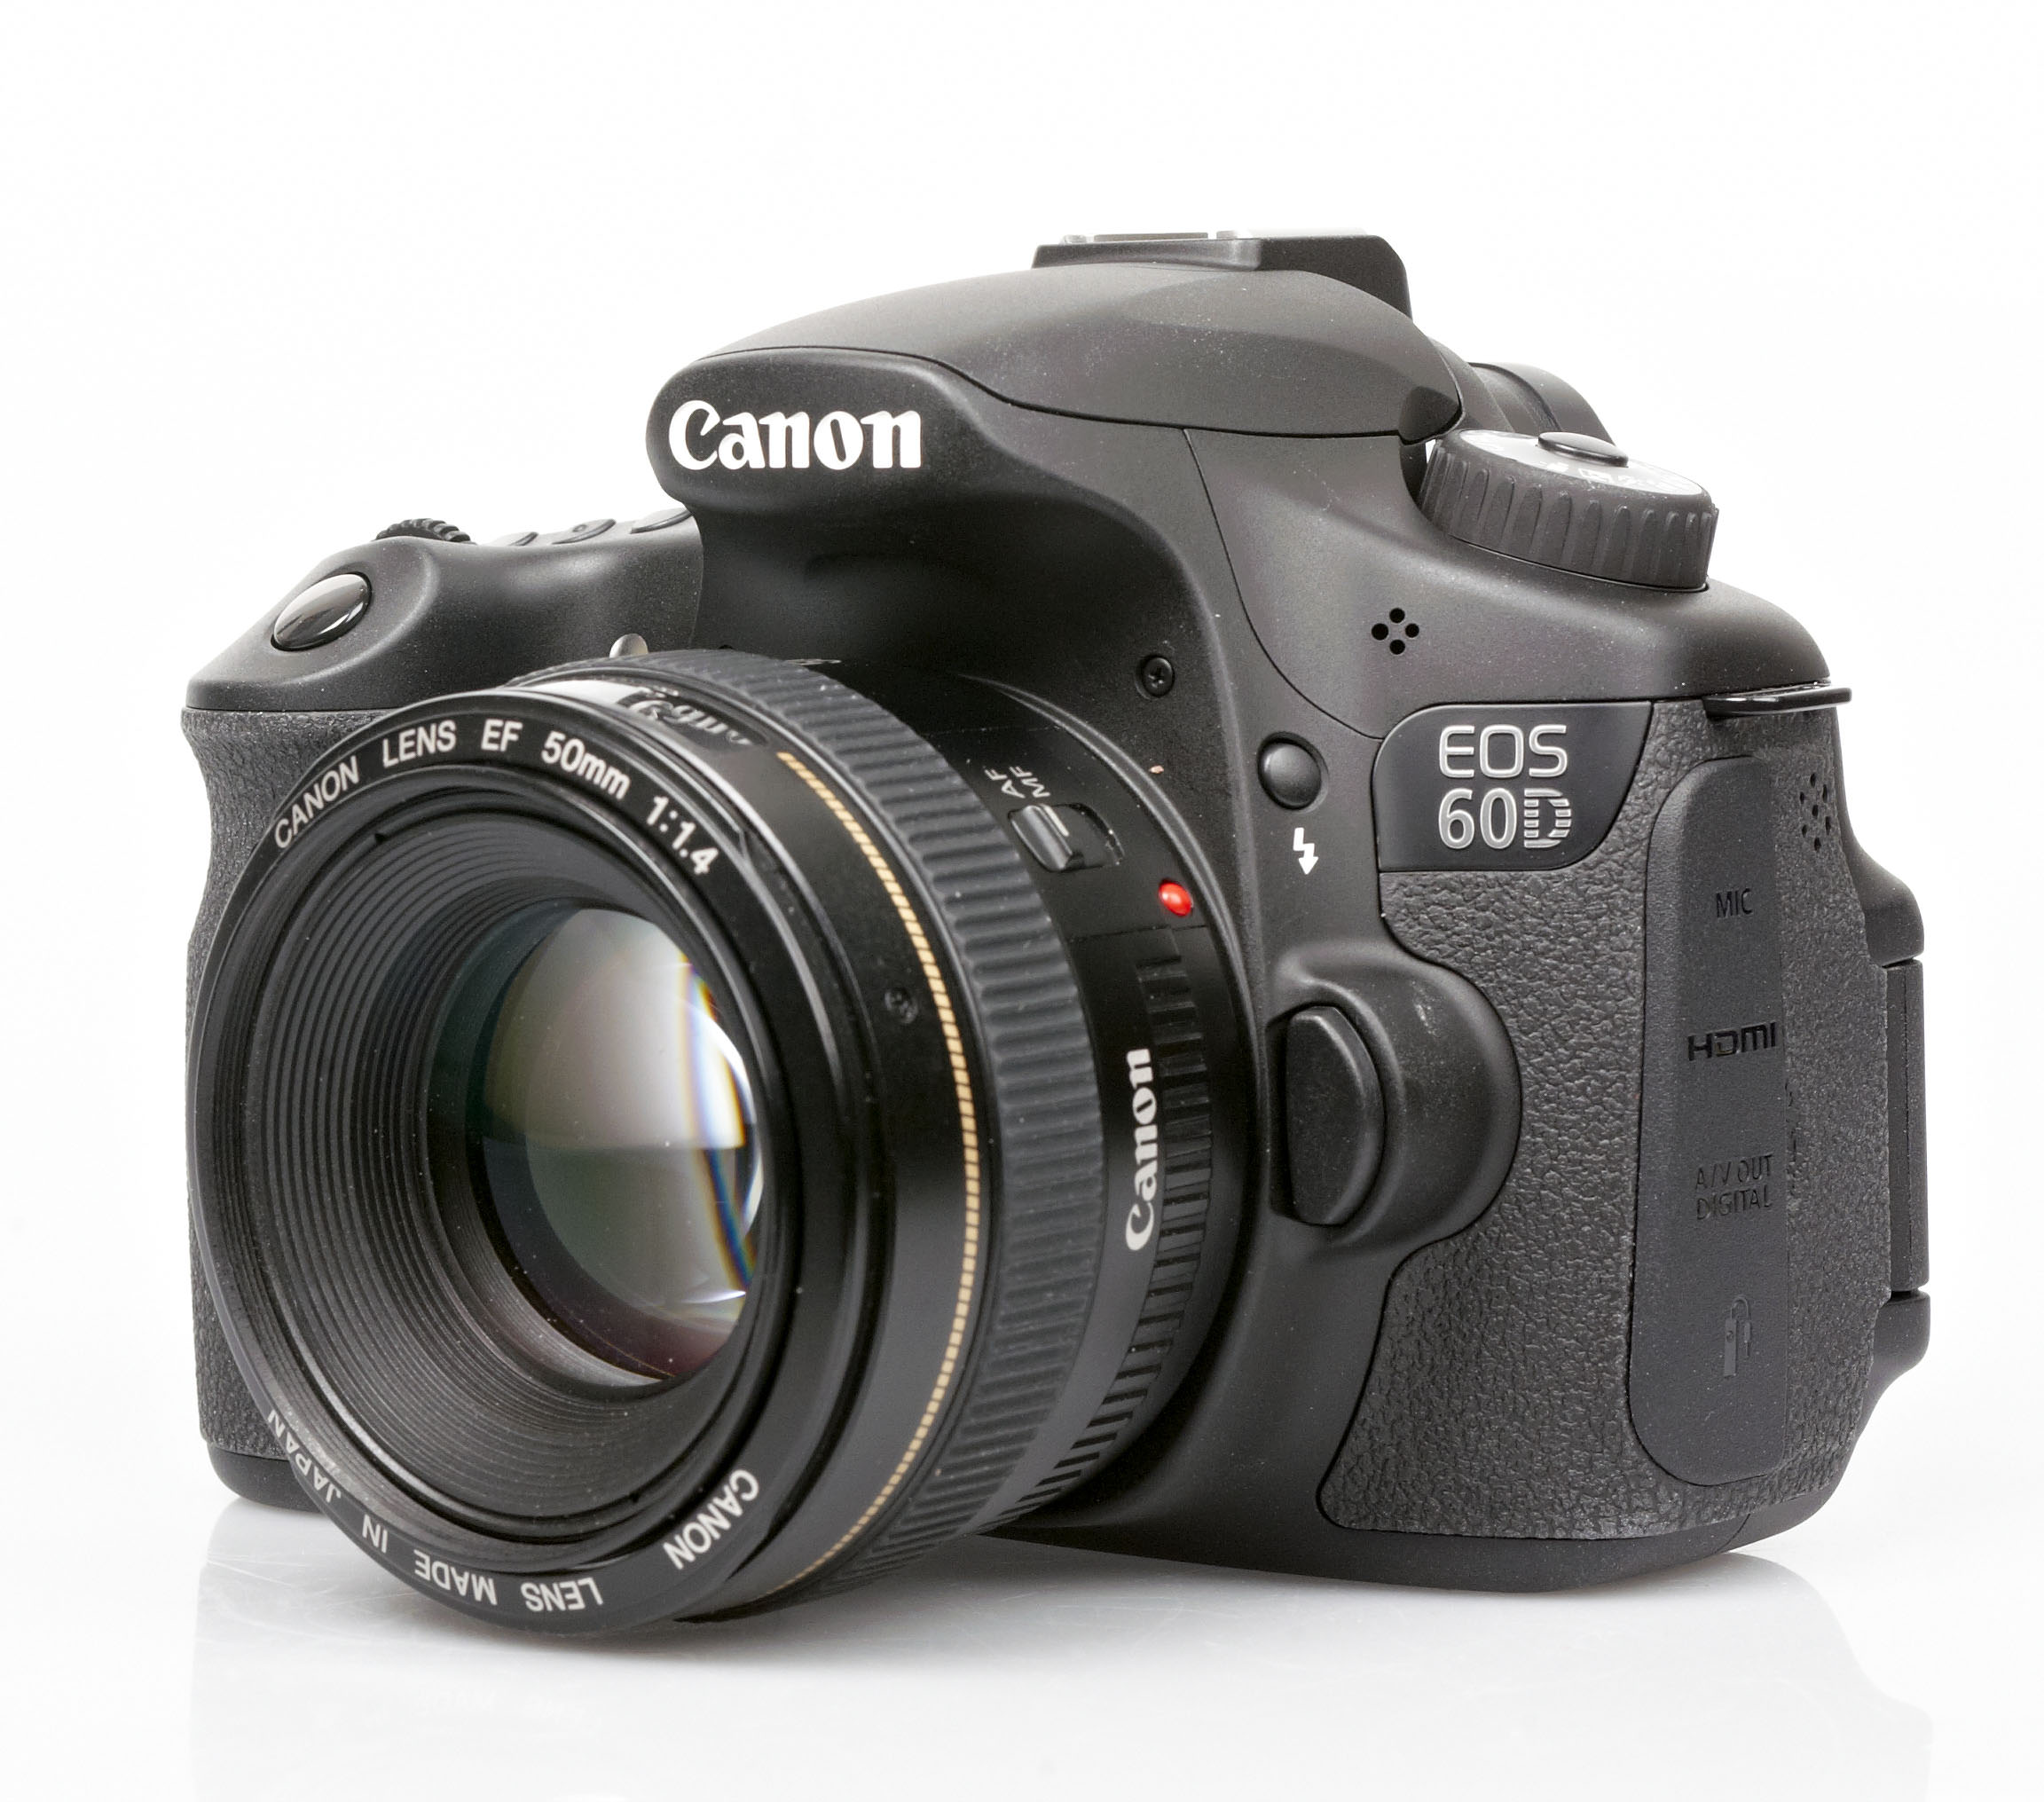 Canon eos 60d side